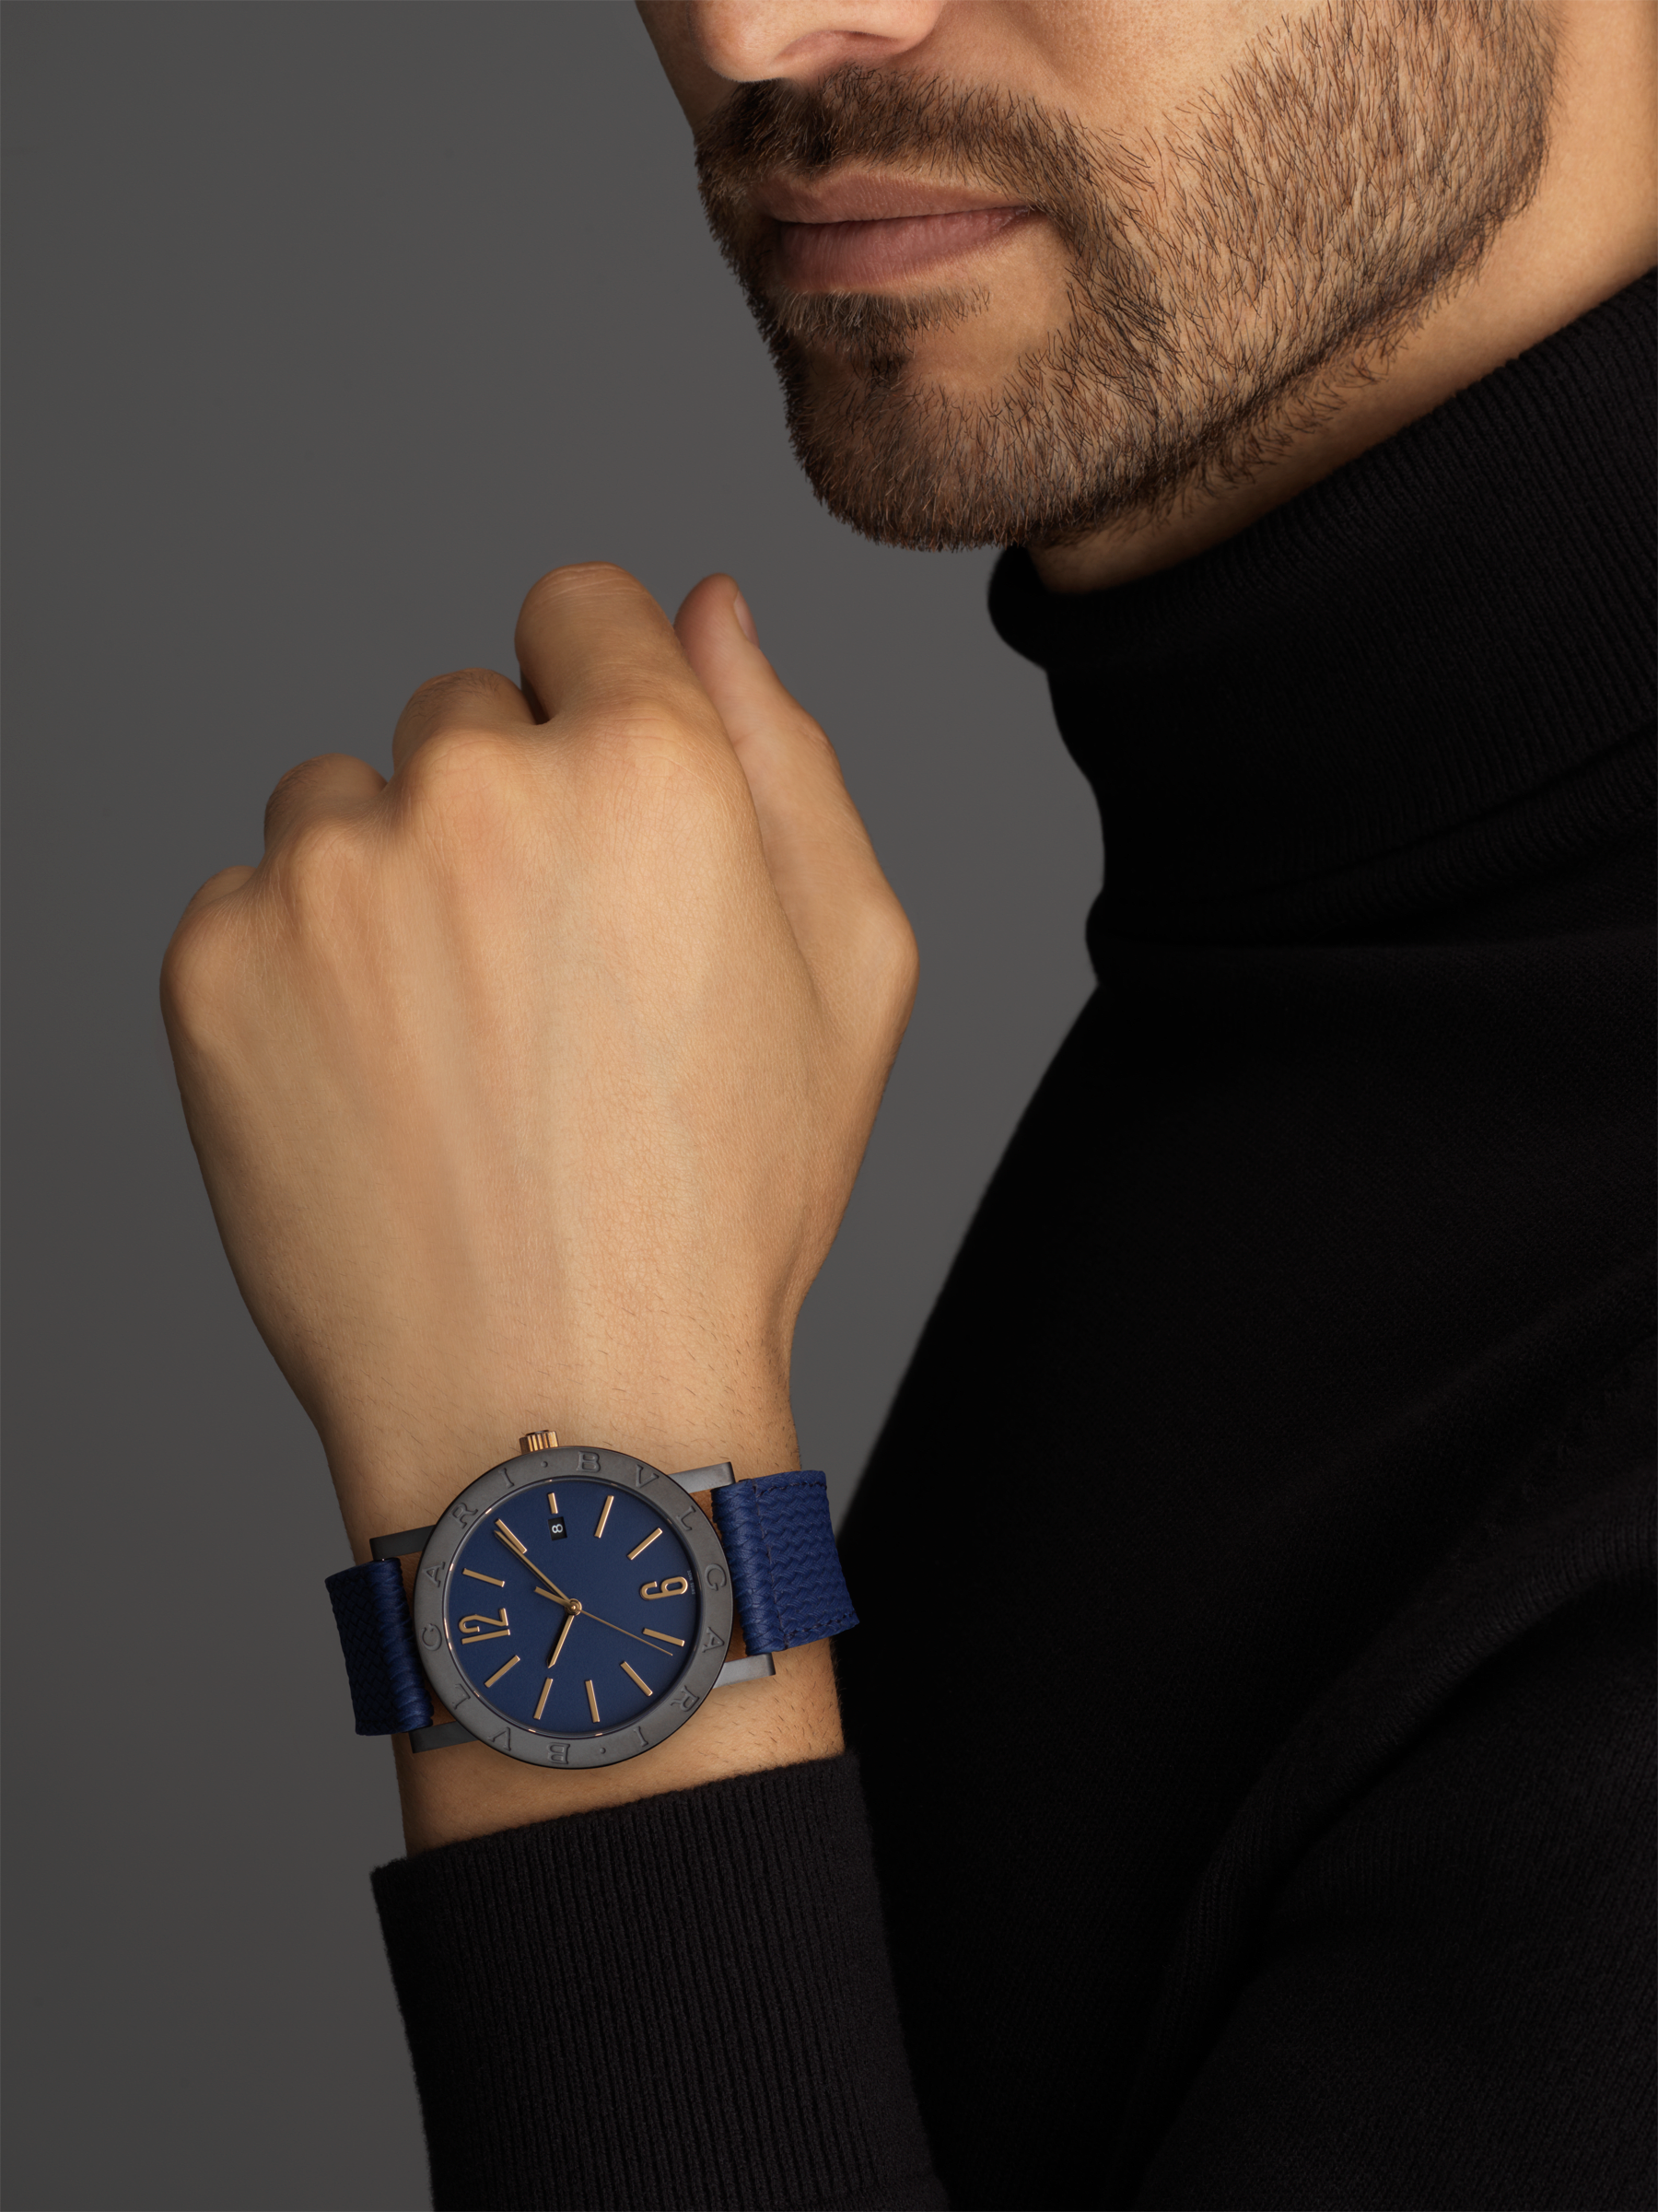 BVLGARI BVLGARI watch with mechanical manufacture movement, automatic winding and date, stainless steel case treated with Diamond Like Carbon and logo engraving on the bezel, blue dial and a blue rubber bracelet. 103133 image 2